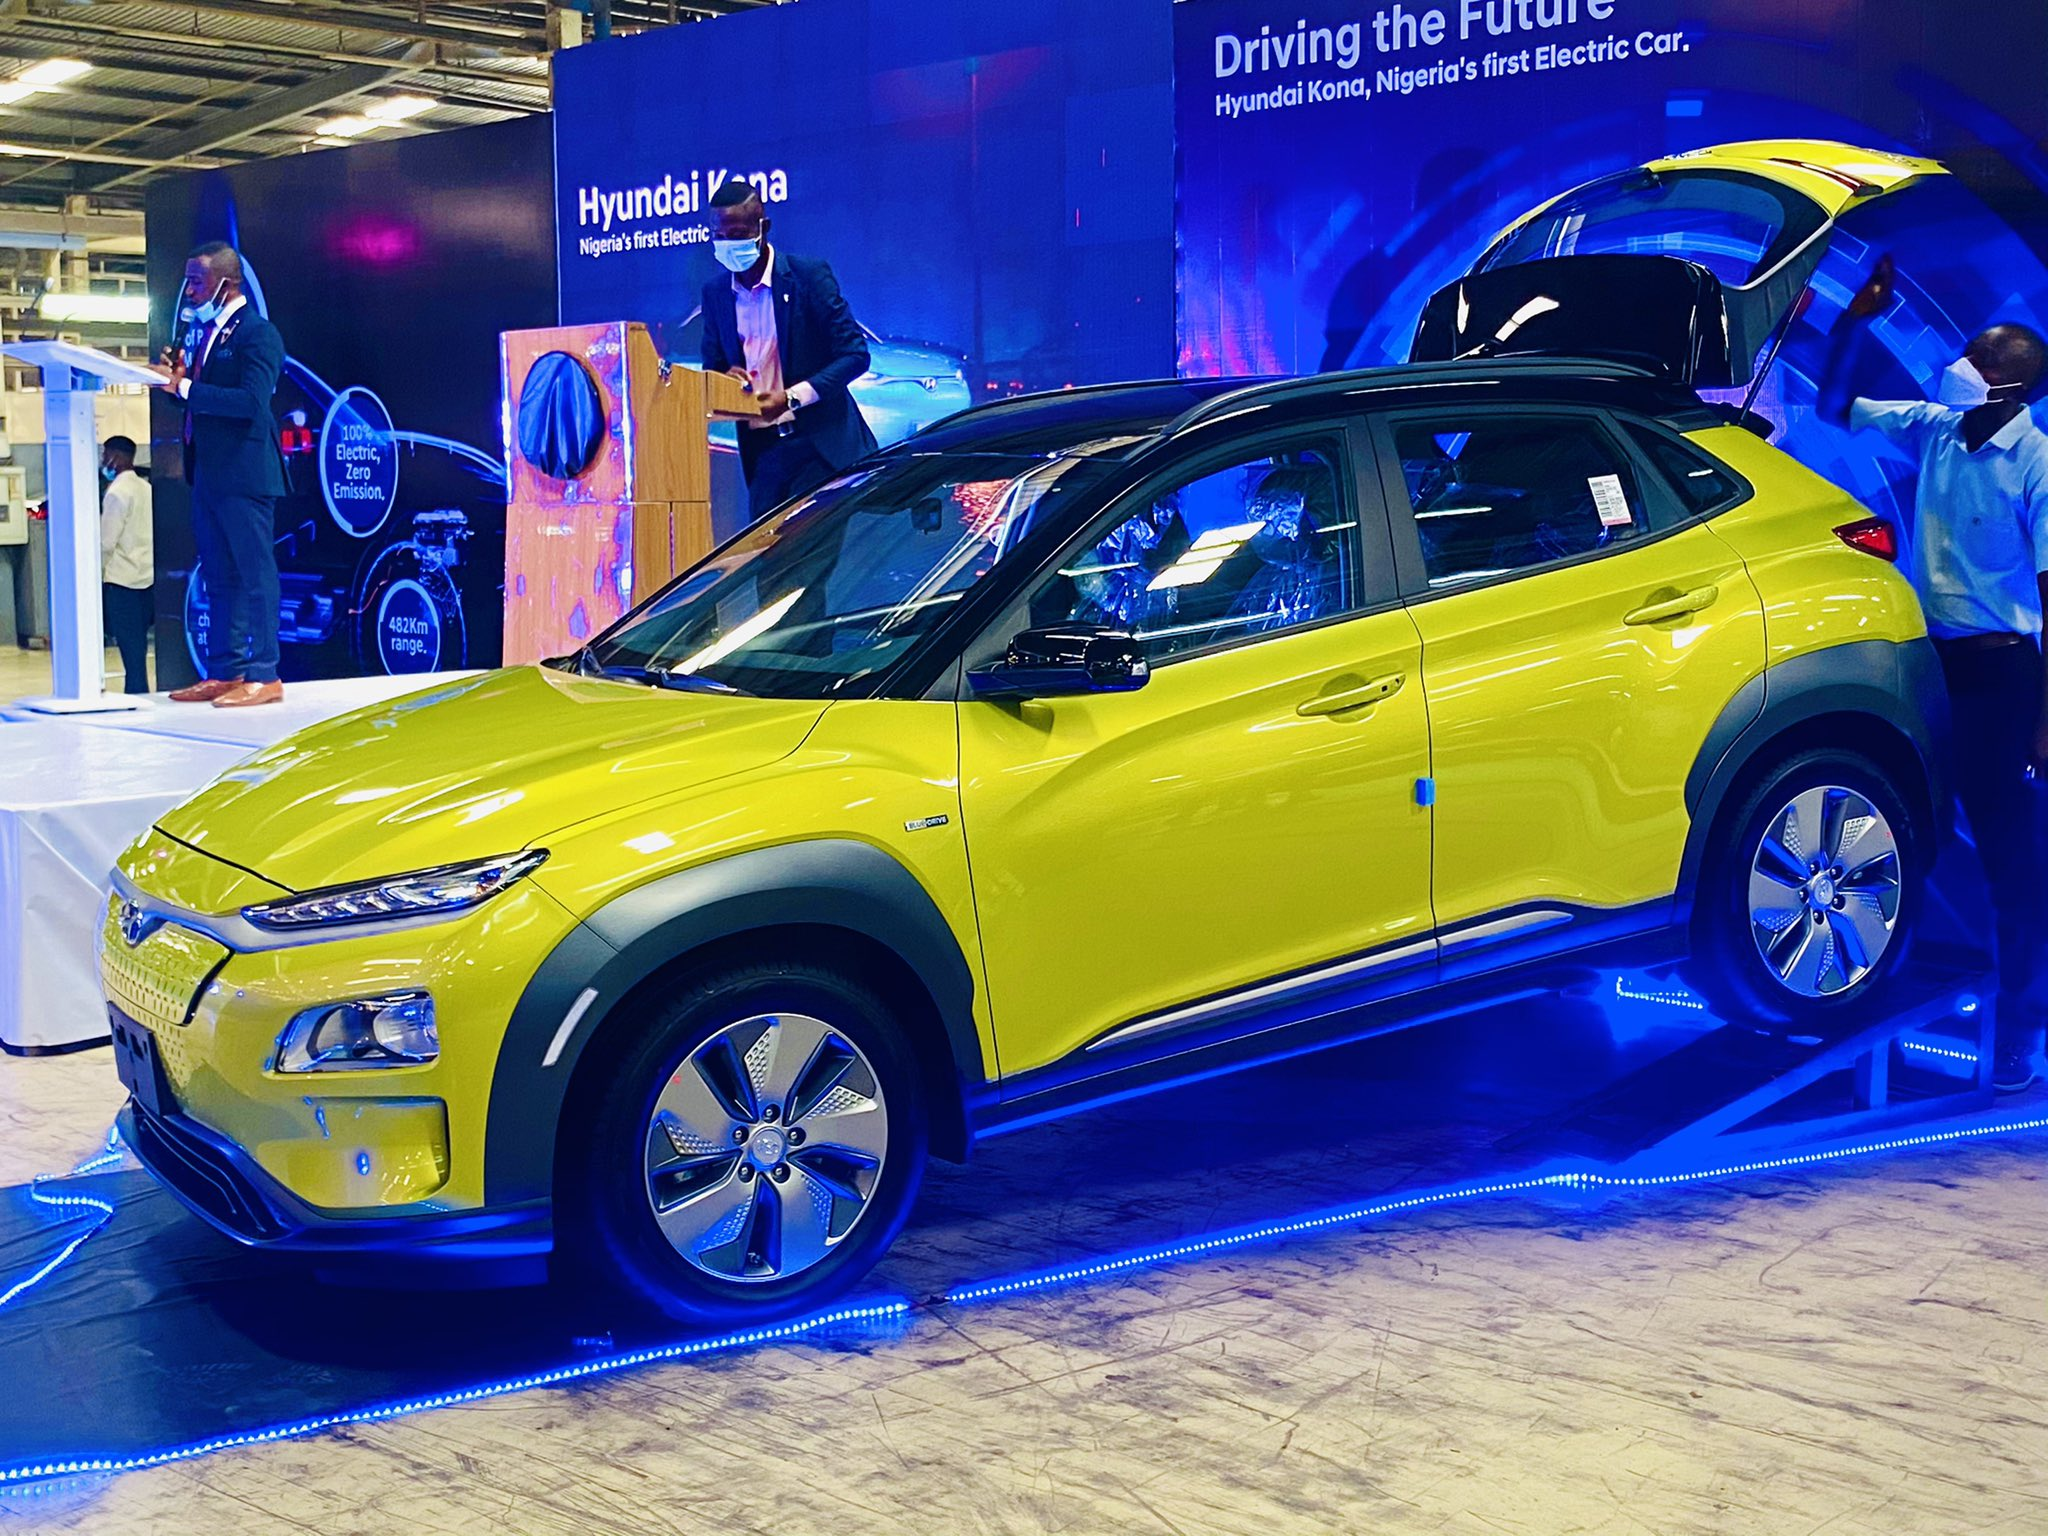 Hyundai Kona: Governor Sanwo-Olu Unveils First Locally-Assembled Electric Car In Nigeria (Photos)